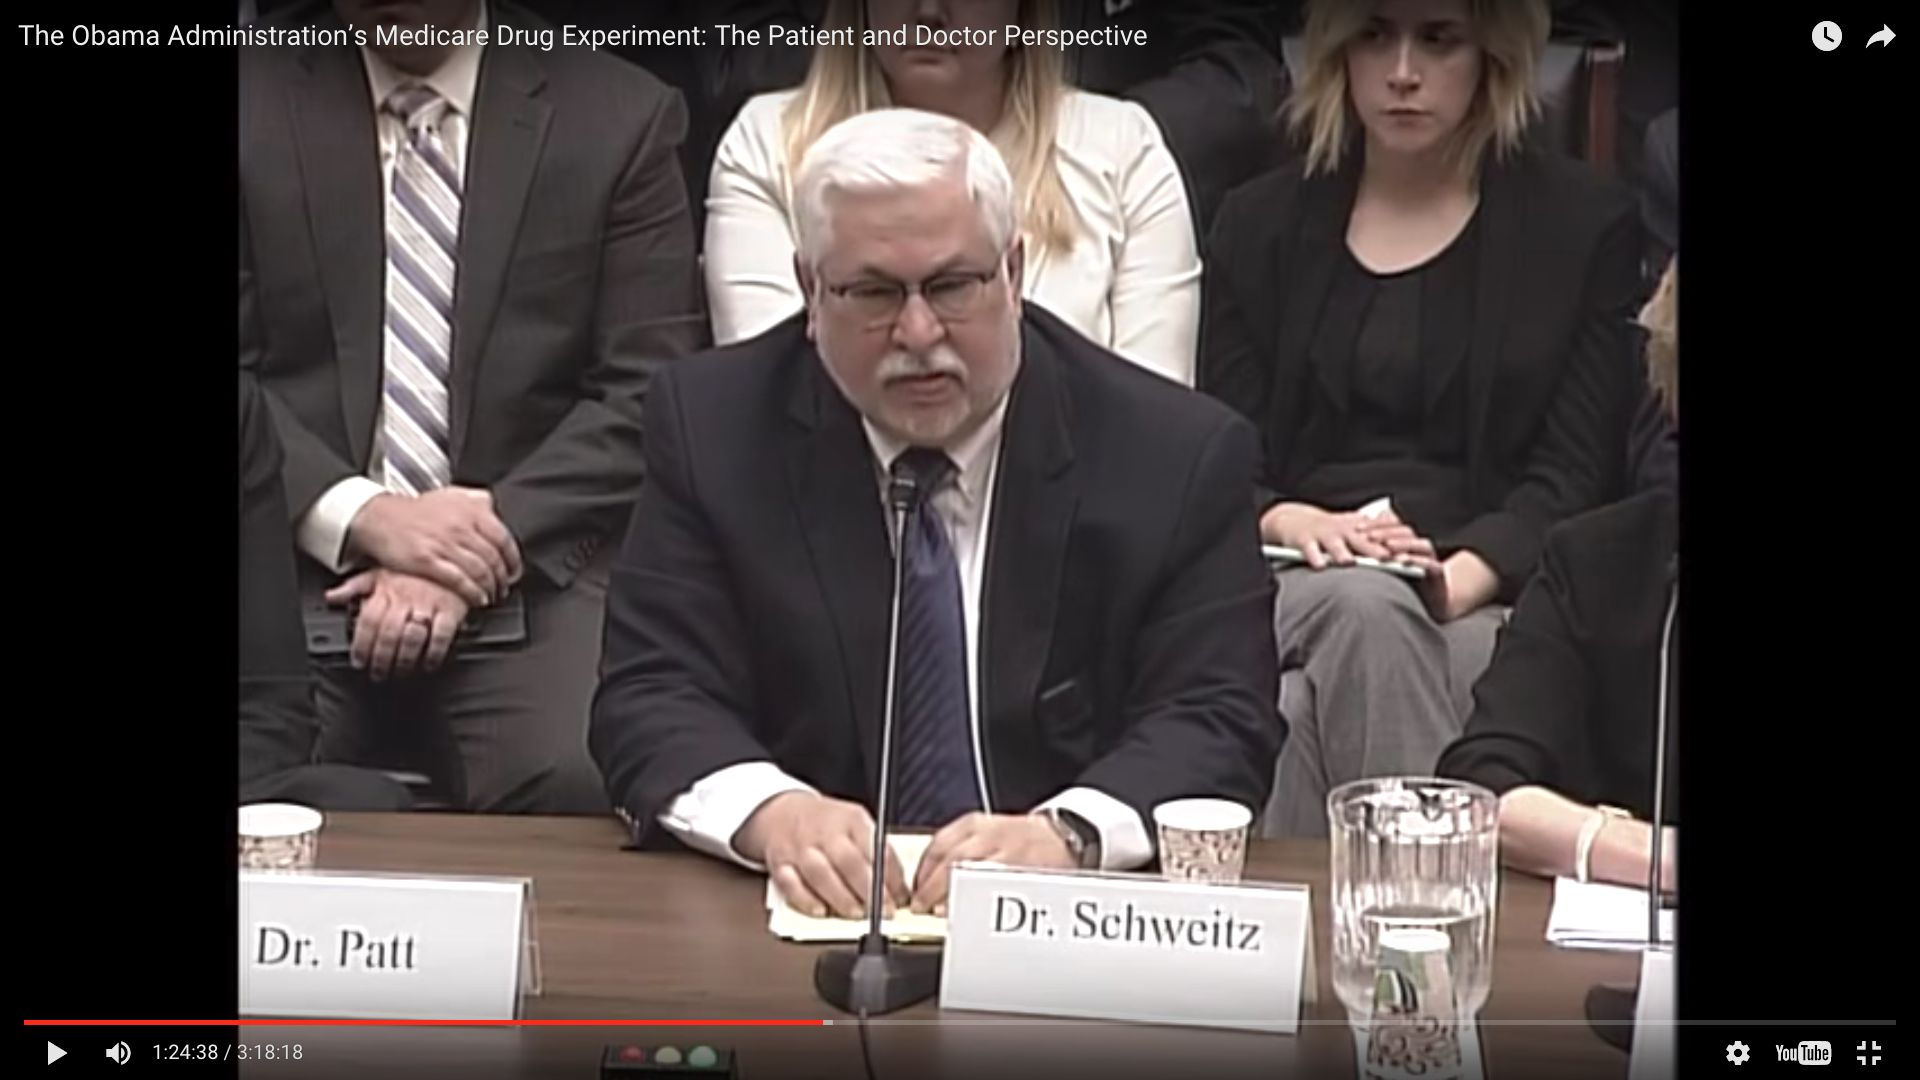 Michael Schweitz, a rheumatologist from Florida, testifies on behalf of the Alliance for Specialty Medicine at a House s